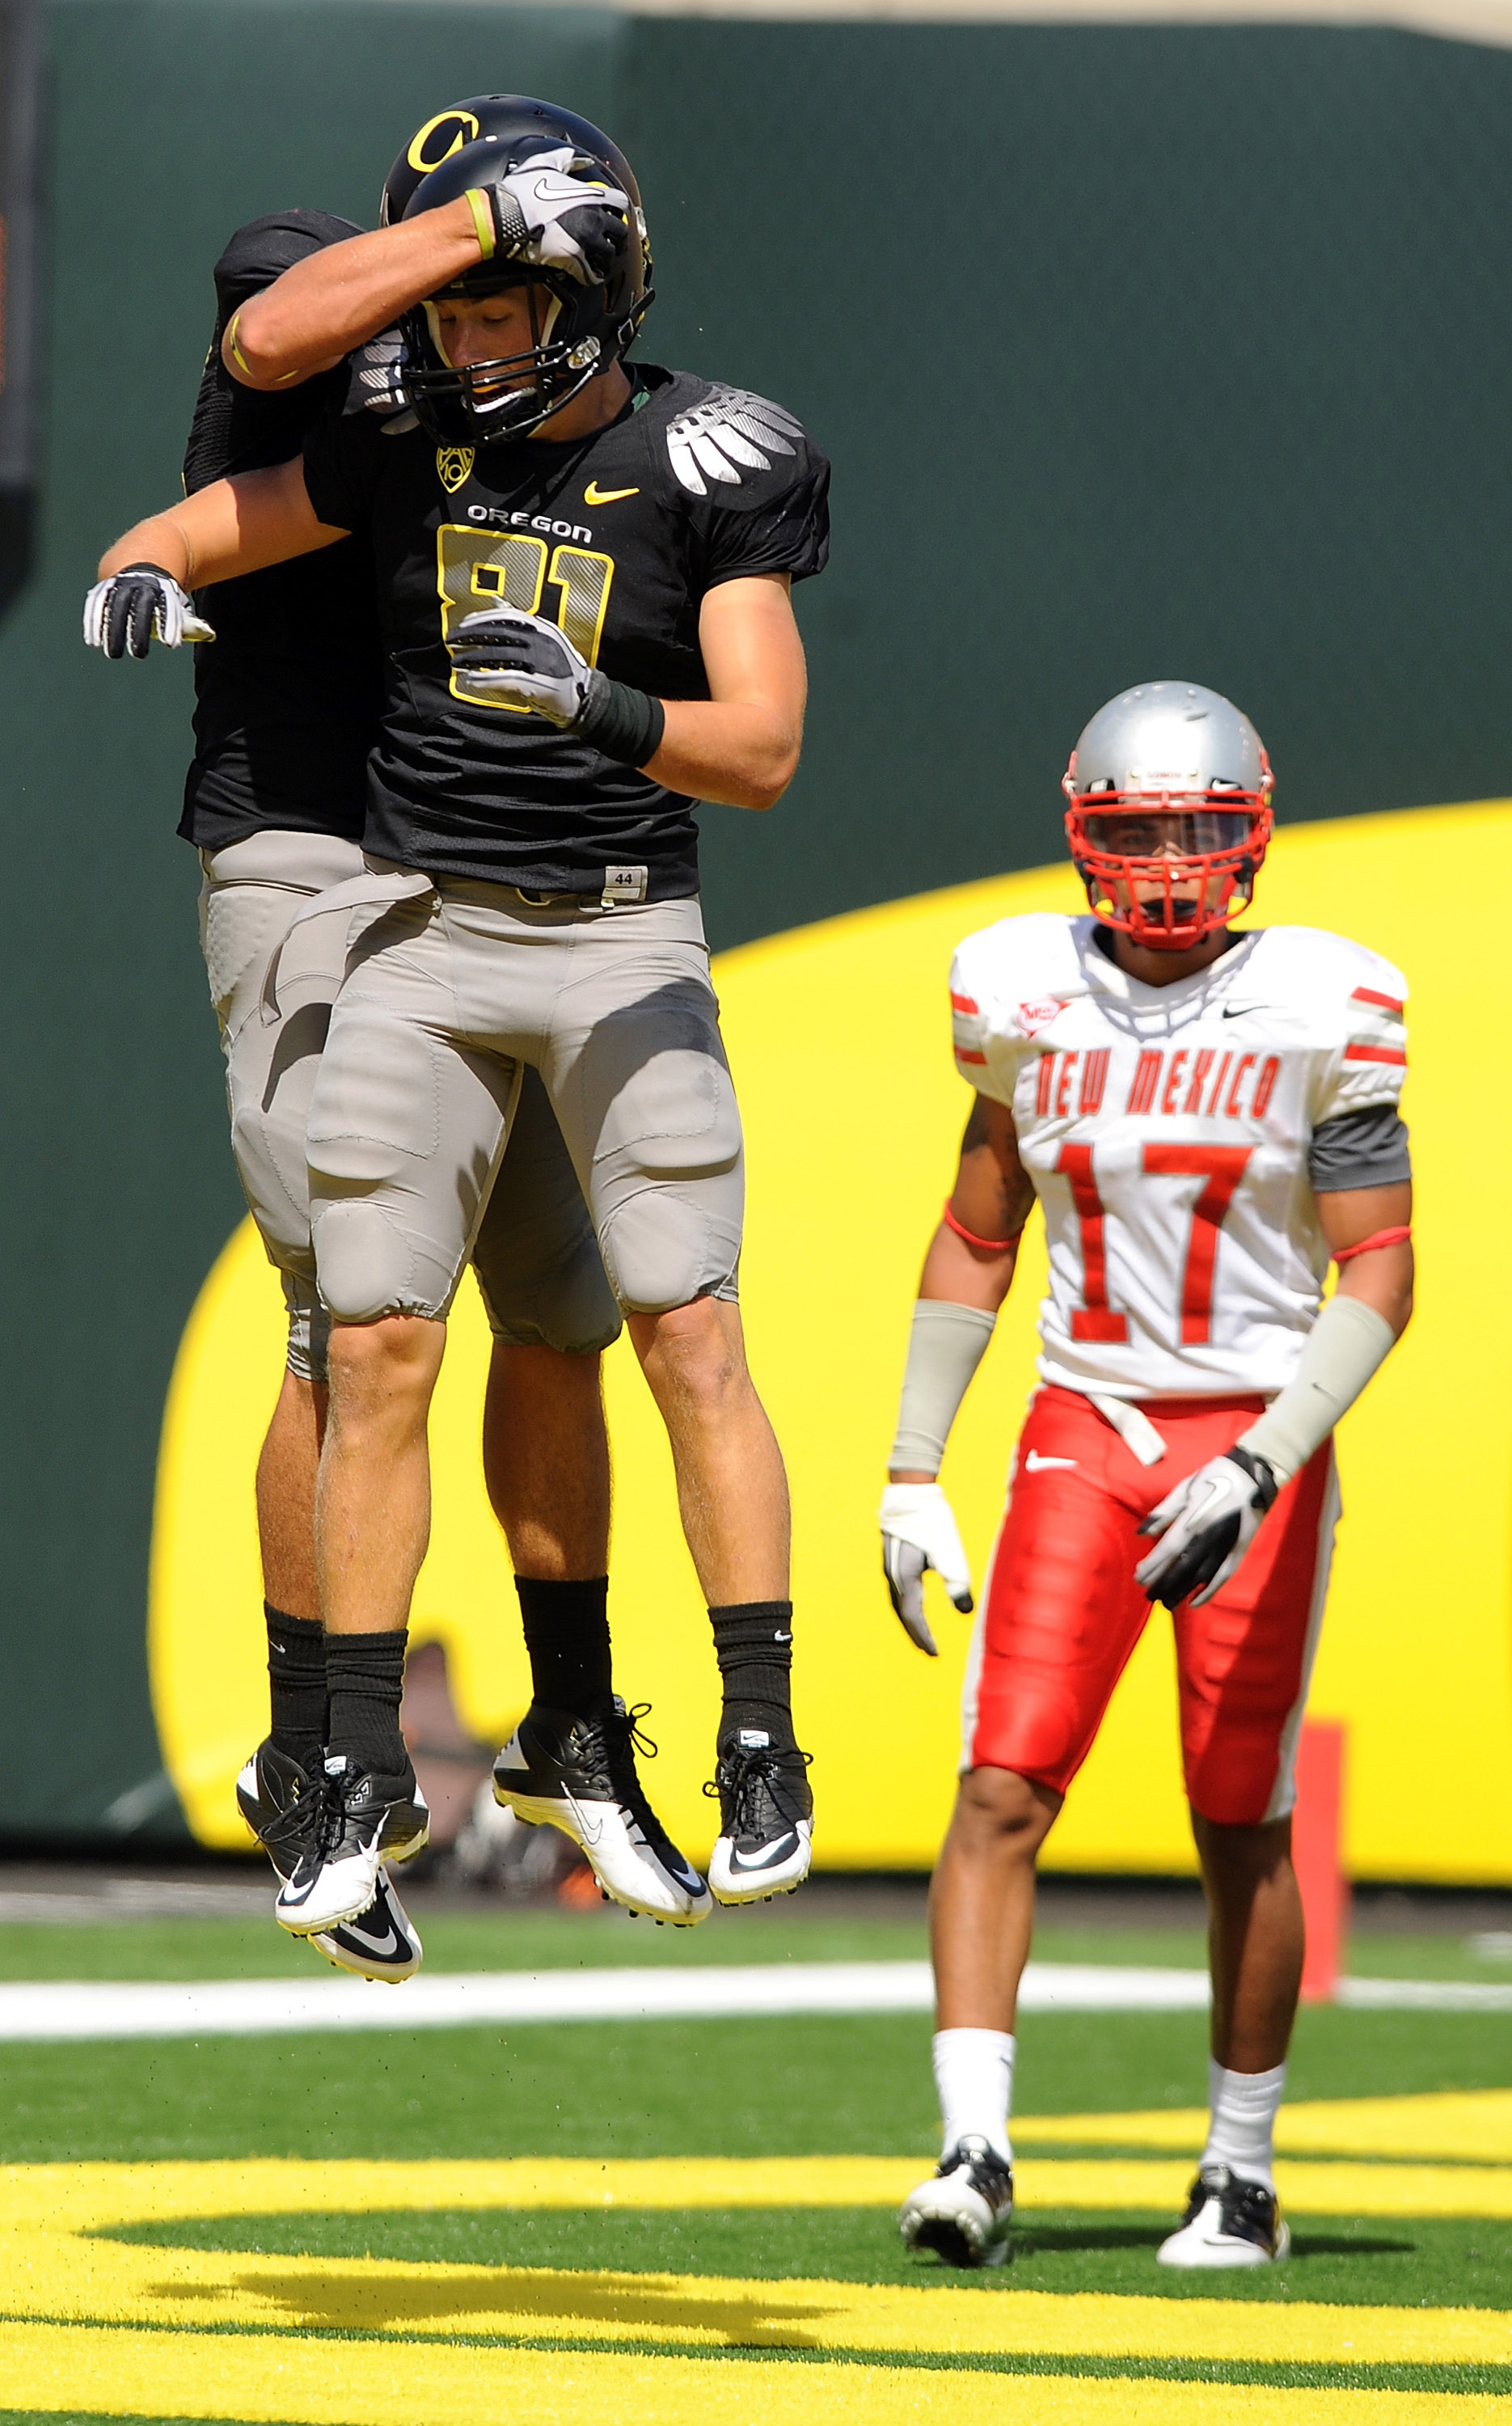 EUGENE, OR - SEPTEMBER 04: Wide receiver Justin Hoffman #81 and tight end David Paulson #42 of the Oregon Ducks celebrate a touchdown reception by Paulson in front of safety Freddy Young #17 of the New Mexico Lobos in the first quarter of the game at Autz